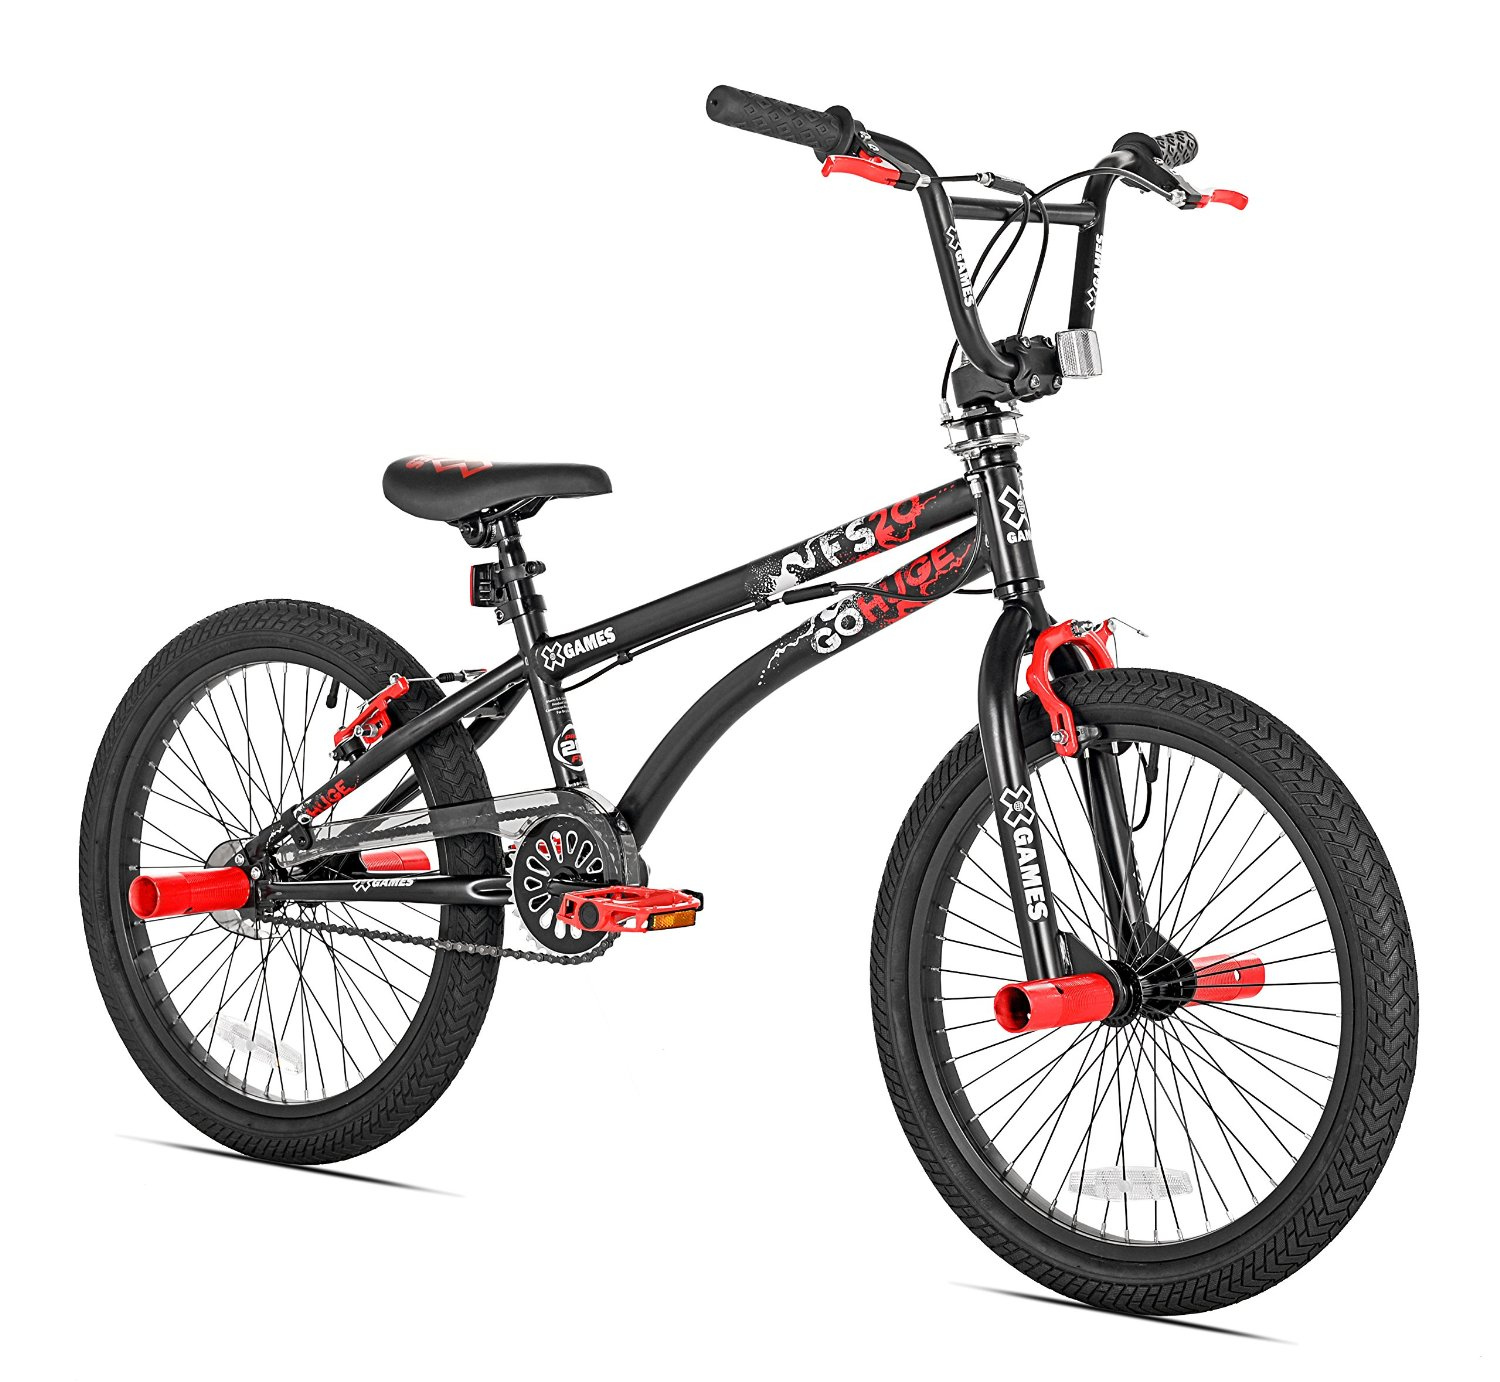 Top 5 best bike for kids